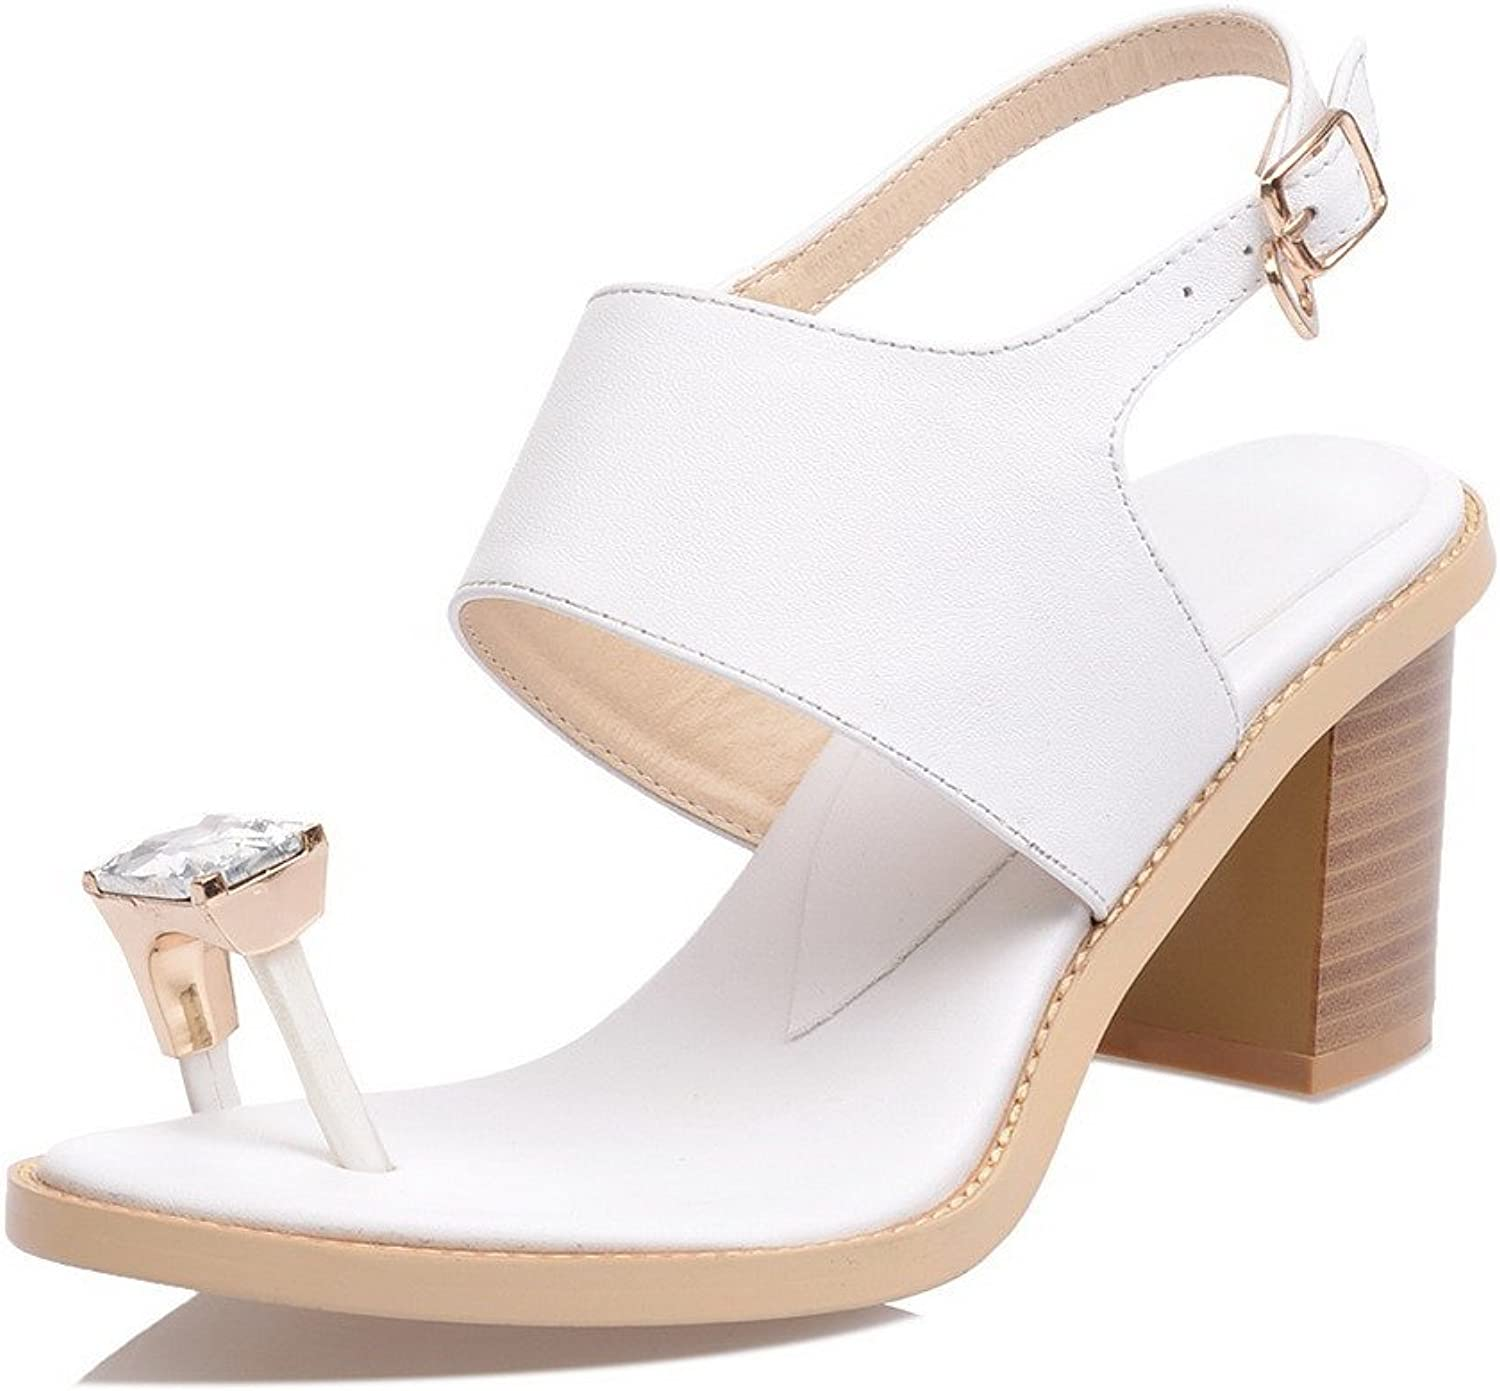 AllhqFashion Women's Buckle Open Toe Kitten Heels Solid Sandals